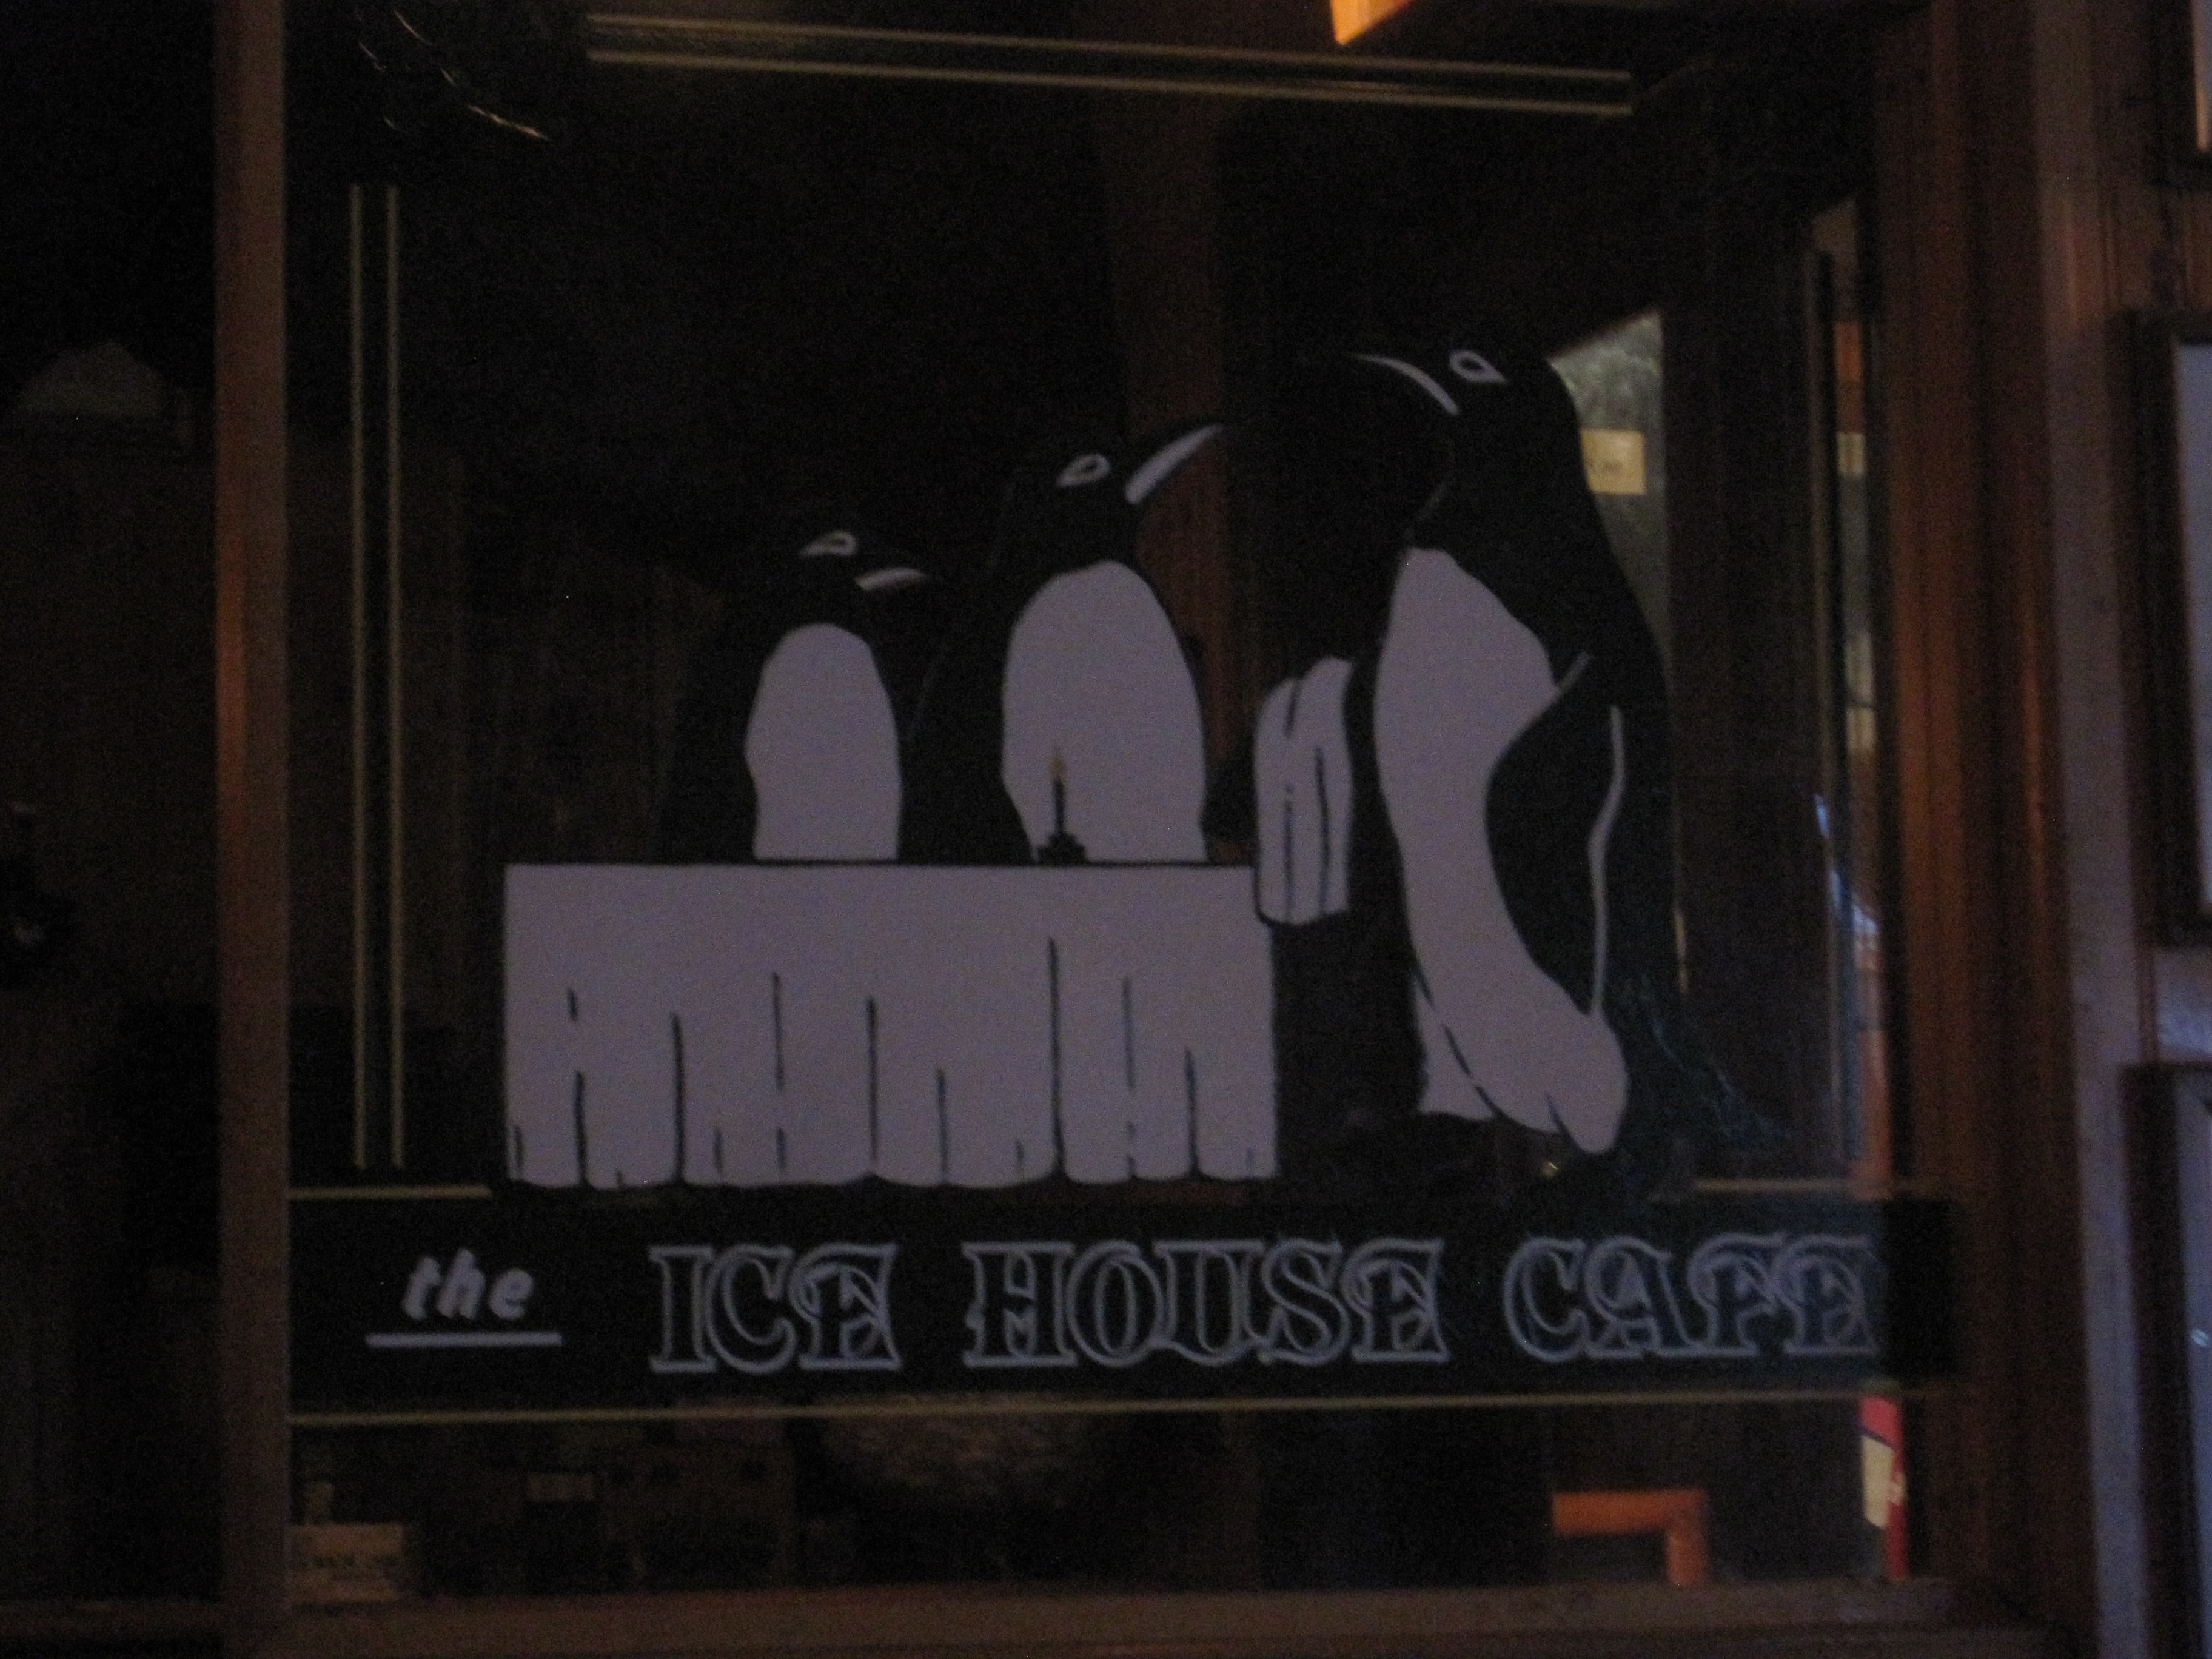 Exploring The Ice House Cafe